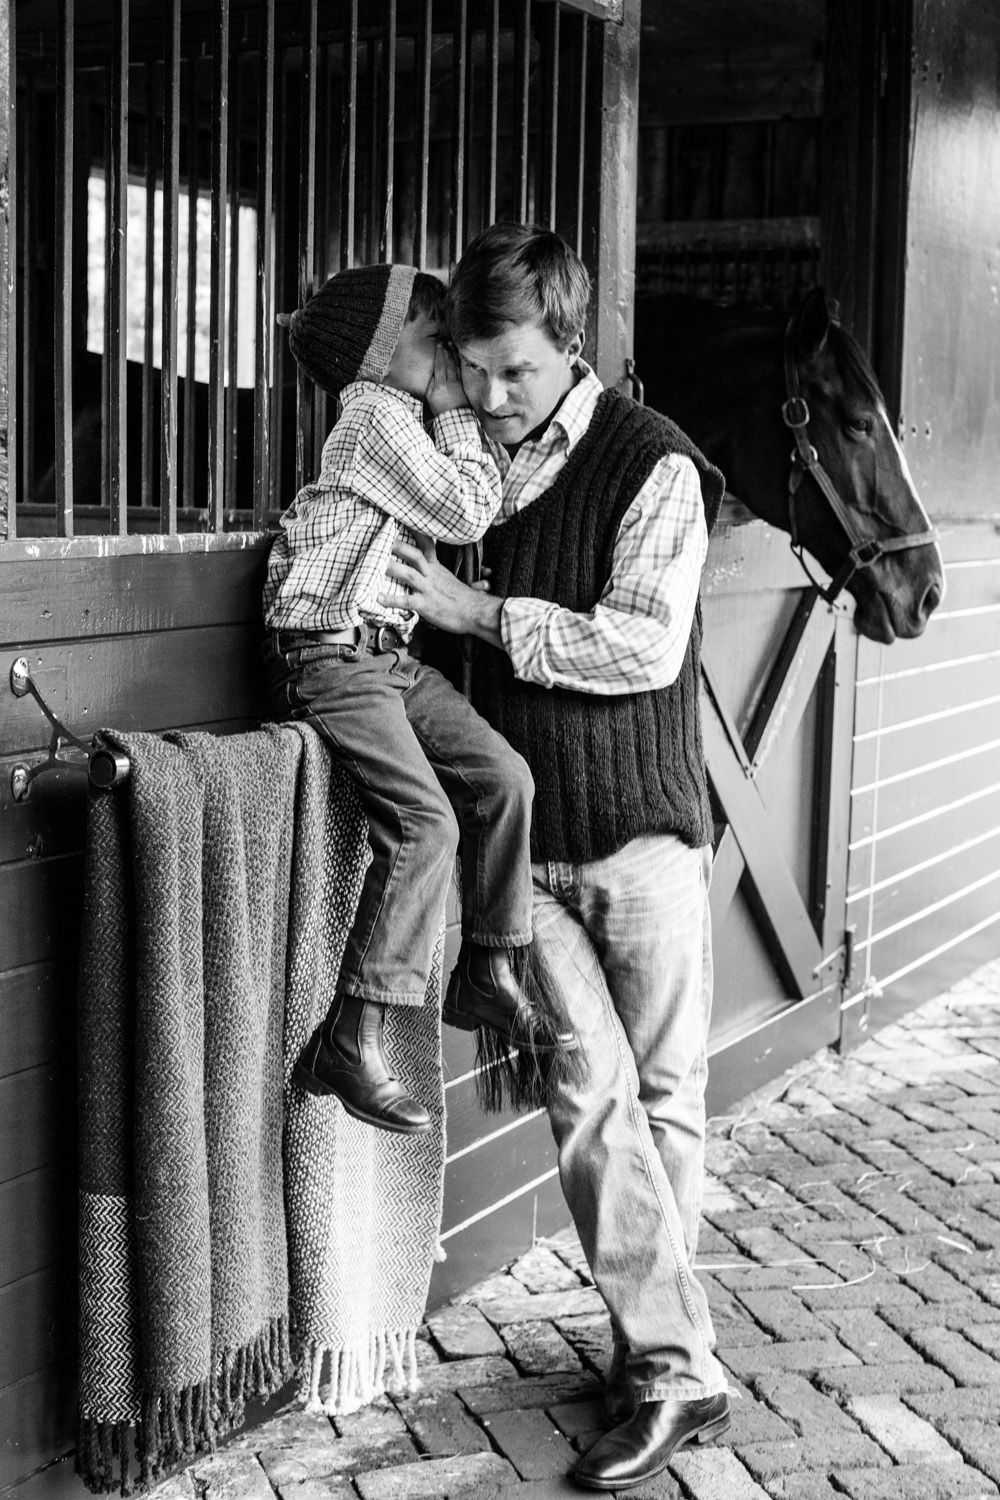 father-son-secret-barn-horses|megan-witt-photo.jpg